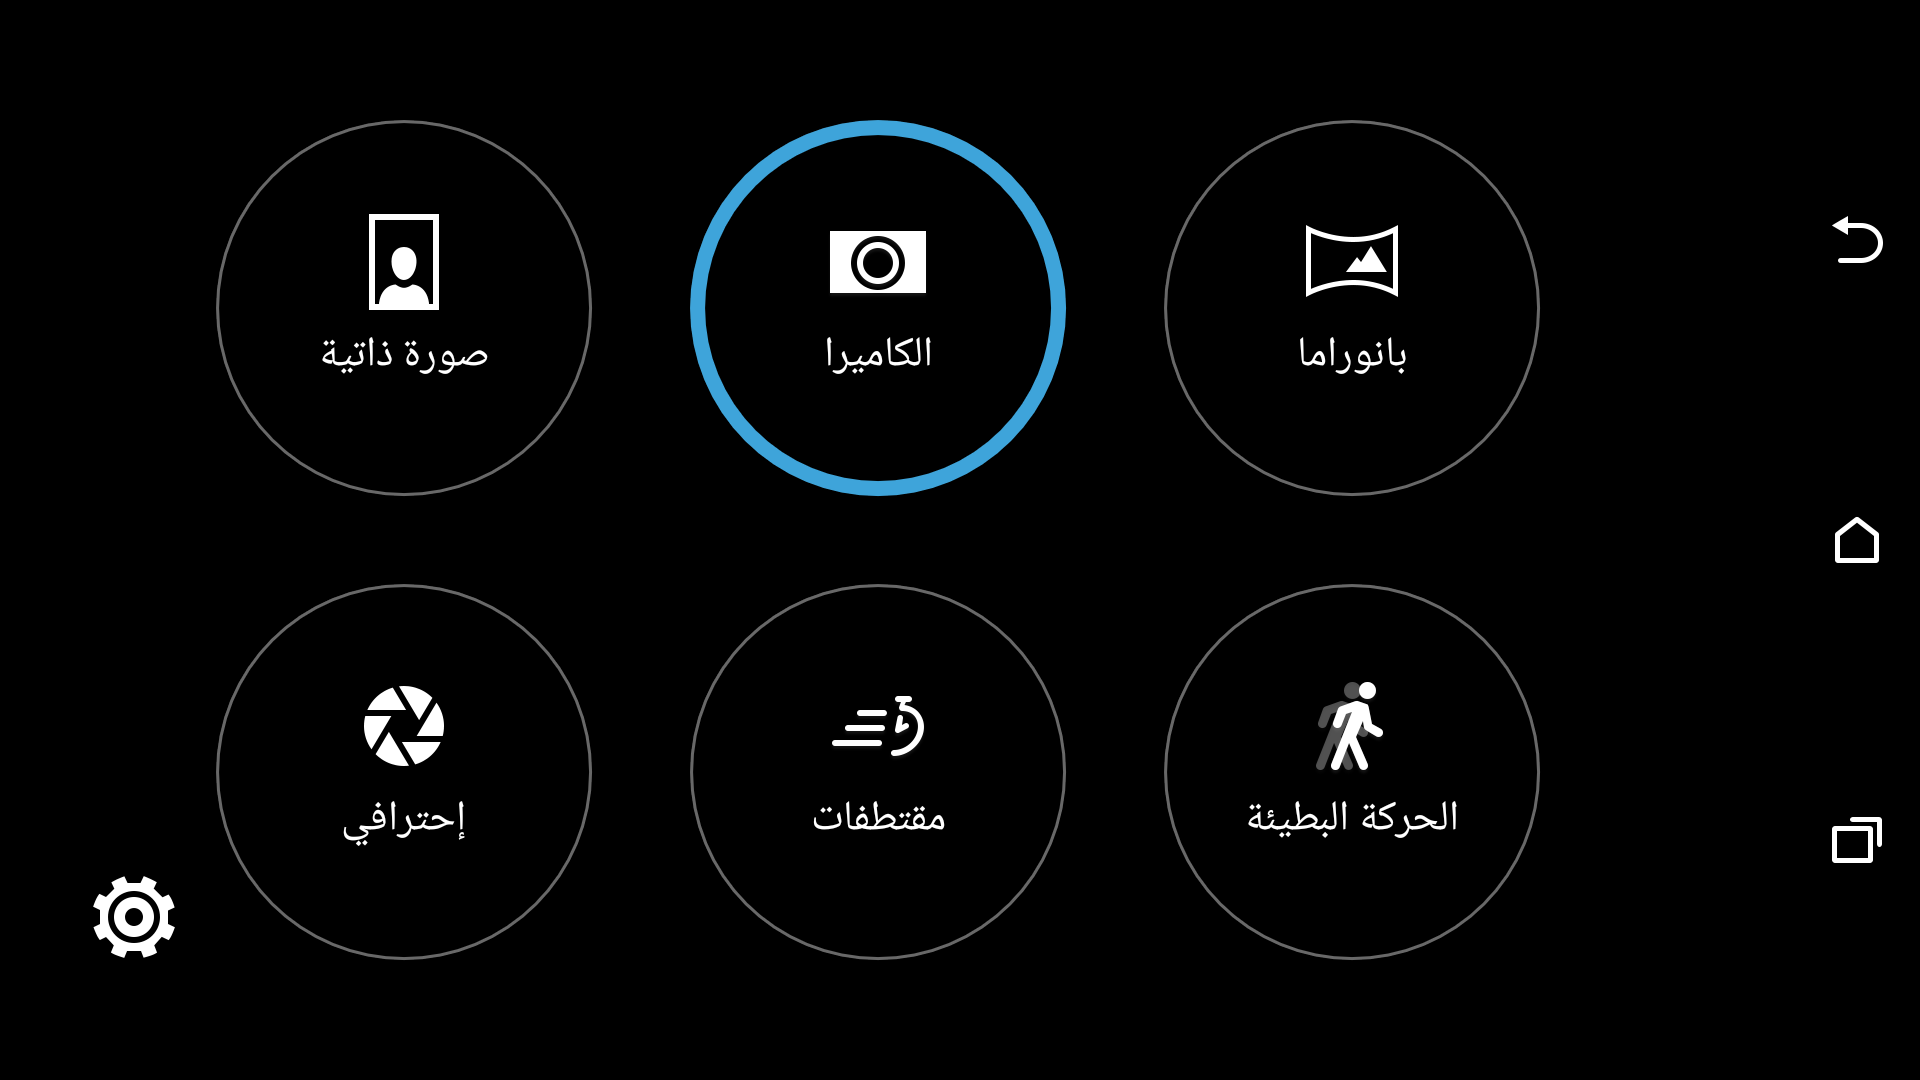 Screenshot_٢٠١٥١١١٤-١٩٠٣٥٠